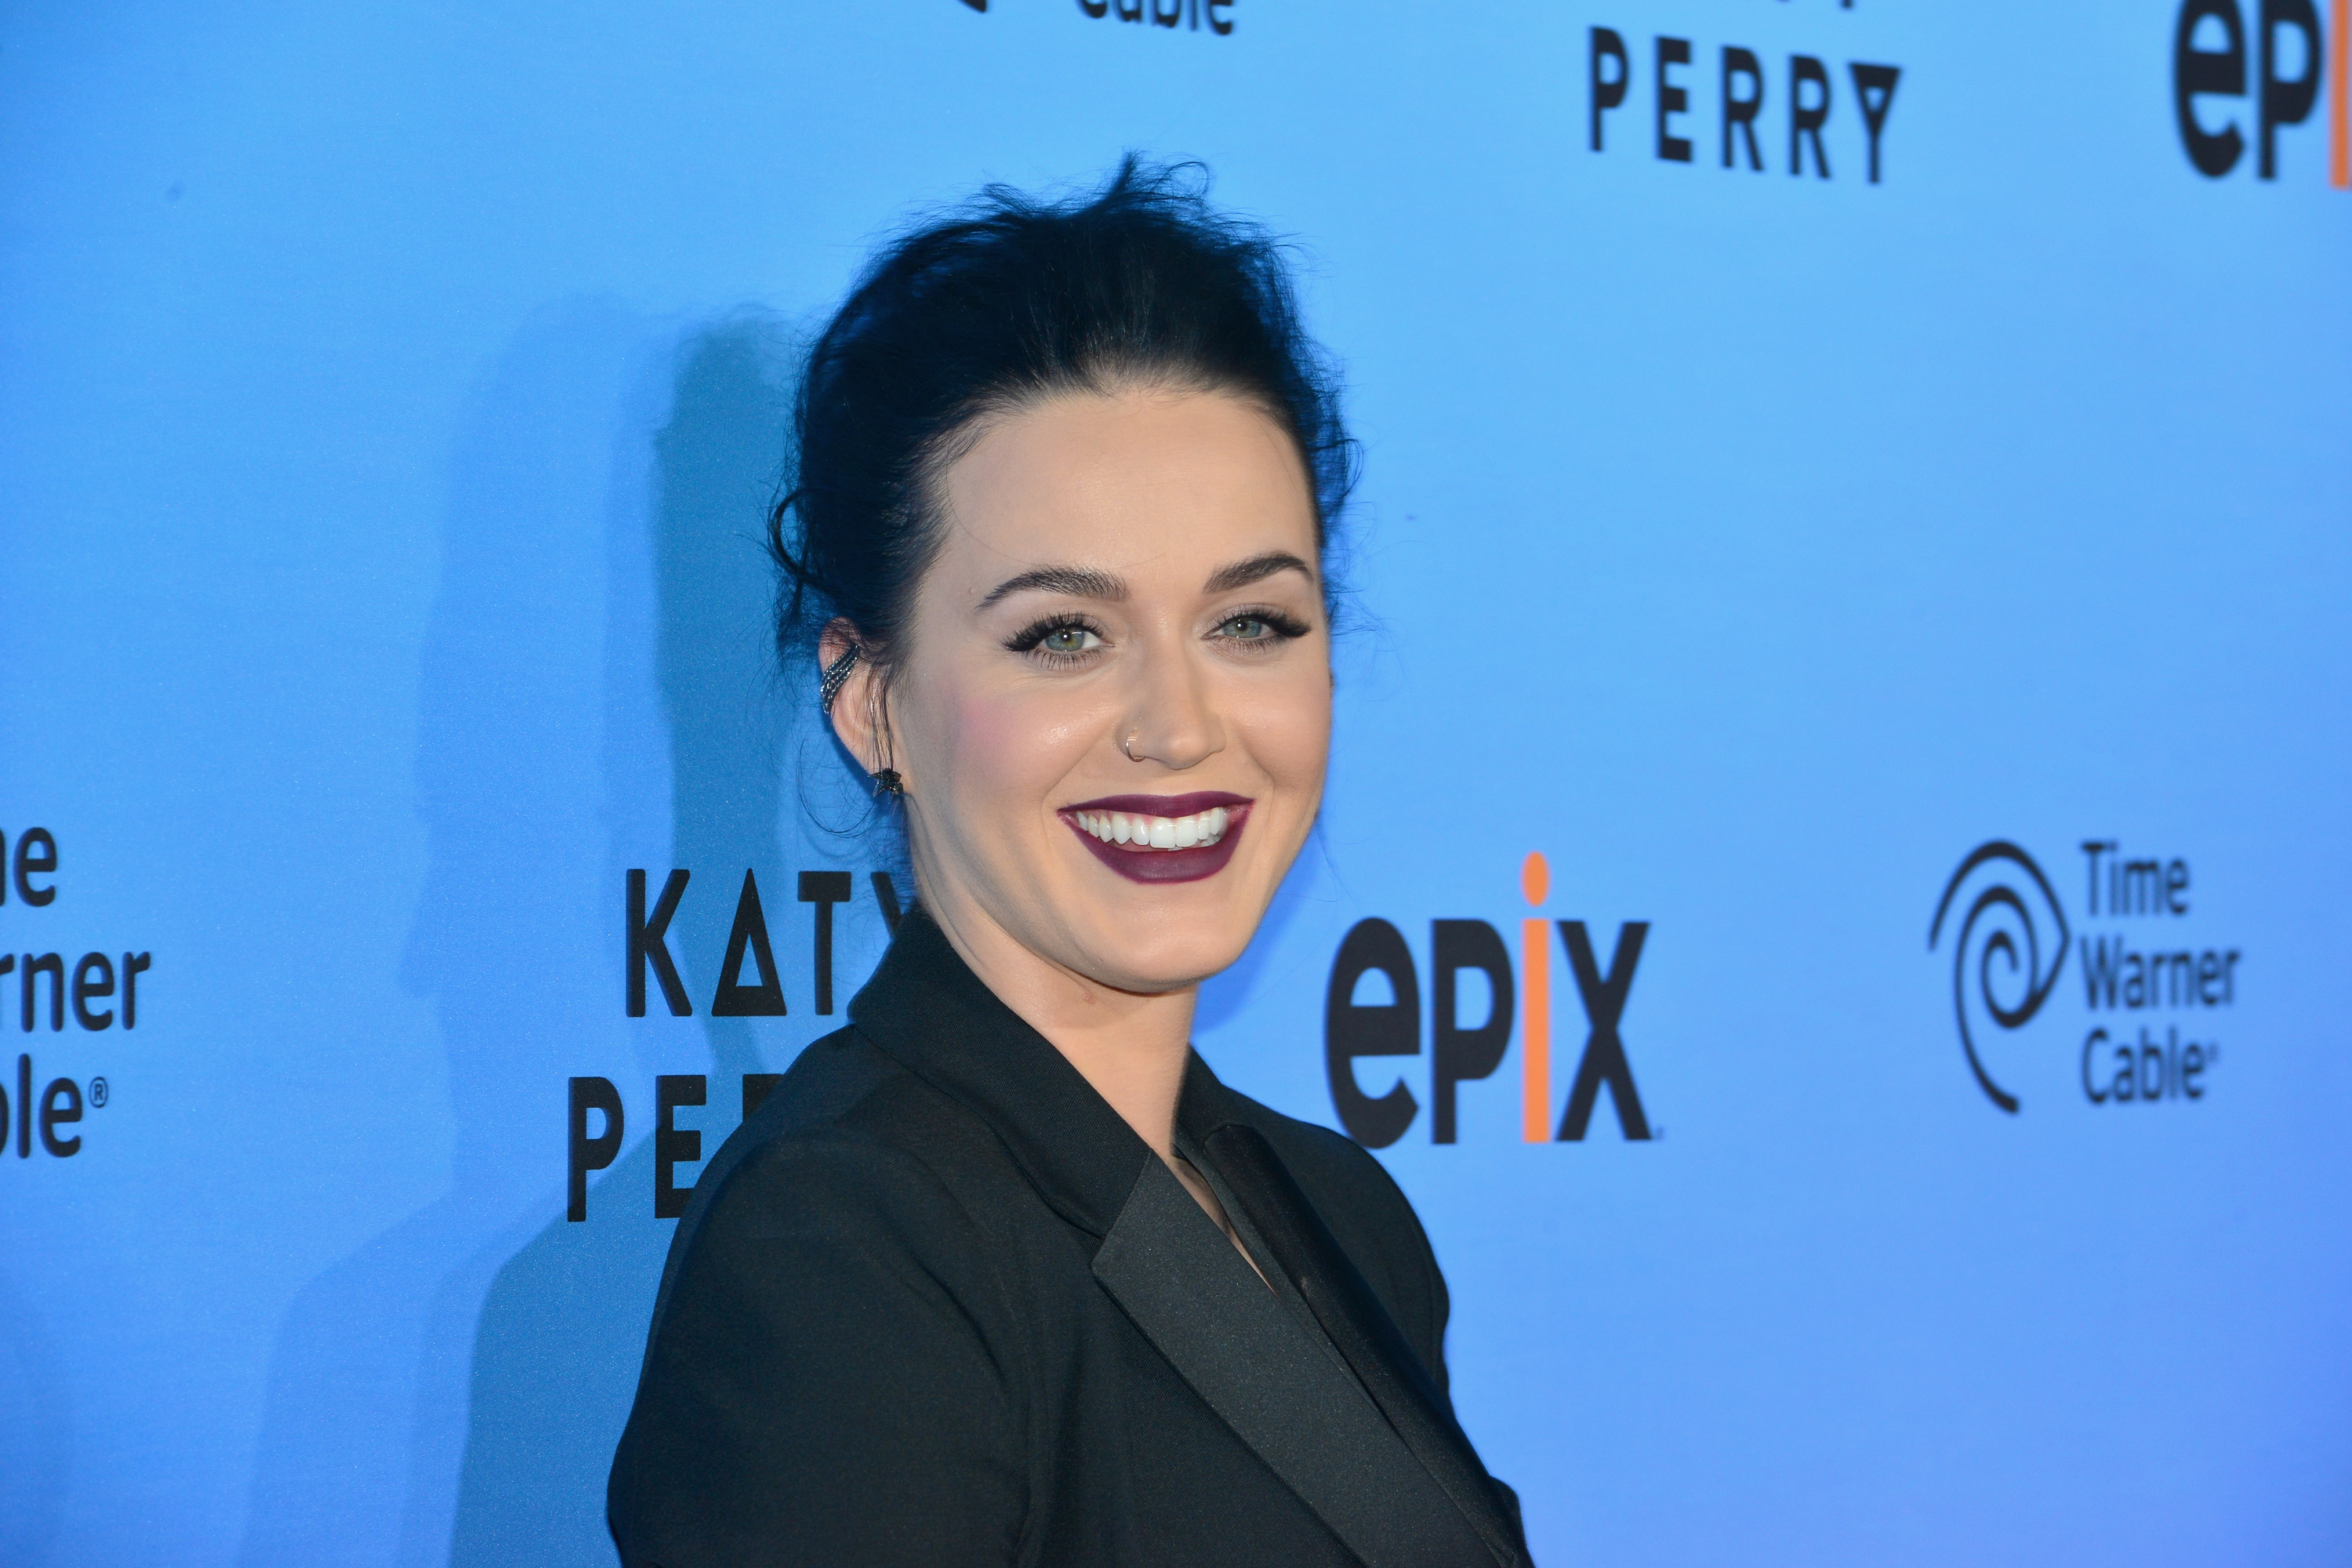 """Time Warner Cable And EPIX World Premier Screening Of """"Katy Perry: The Prismatic World Tour"""""""